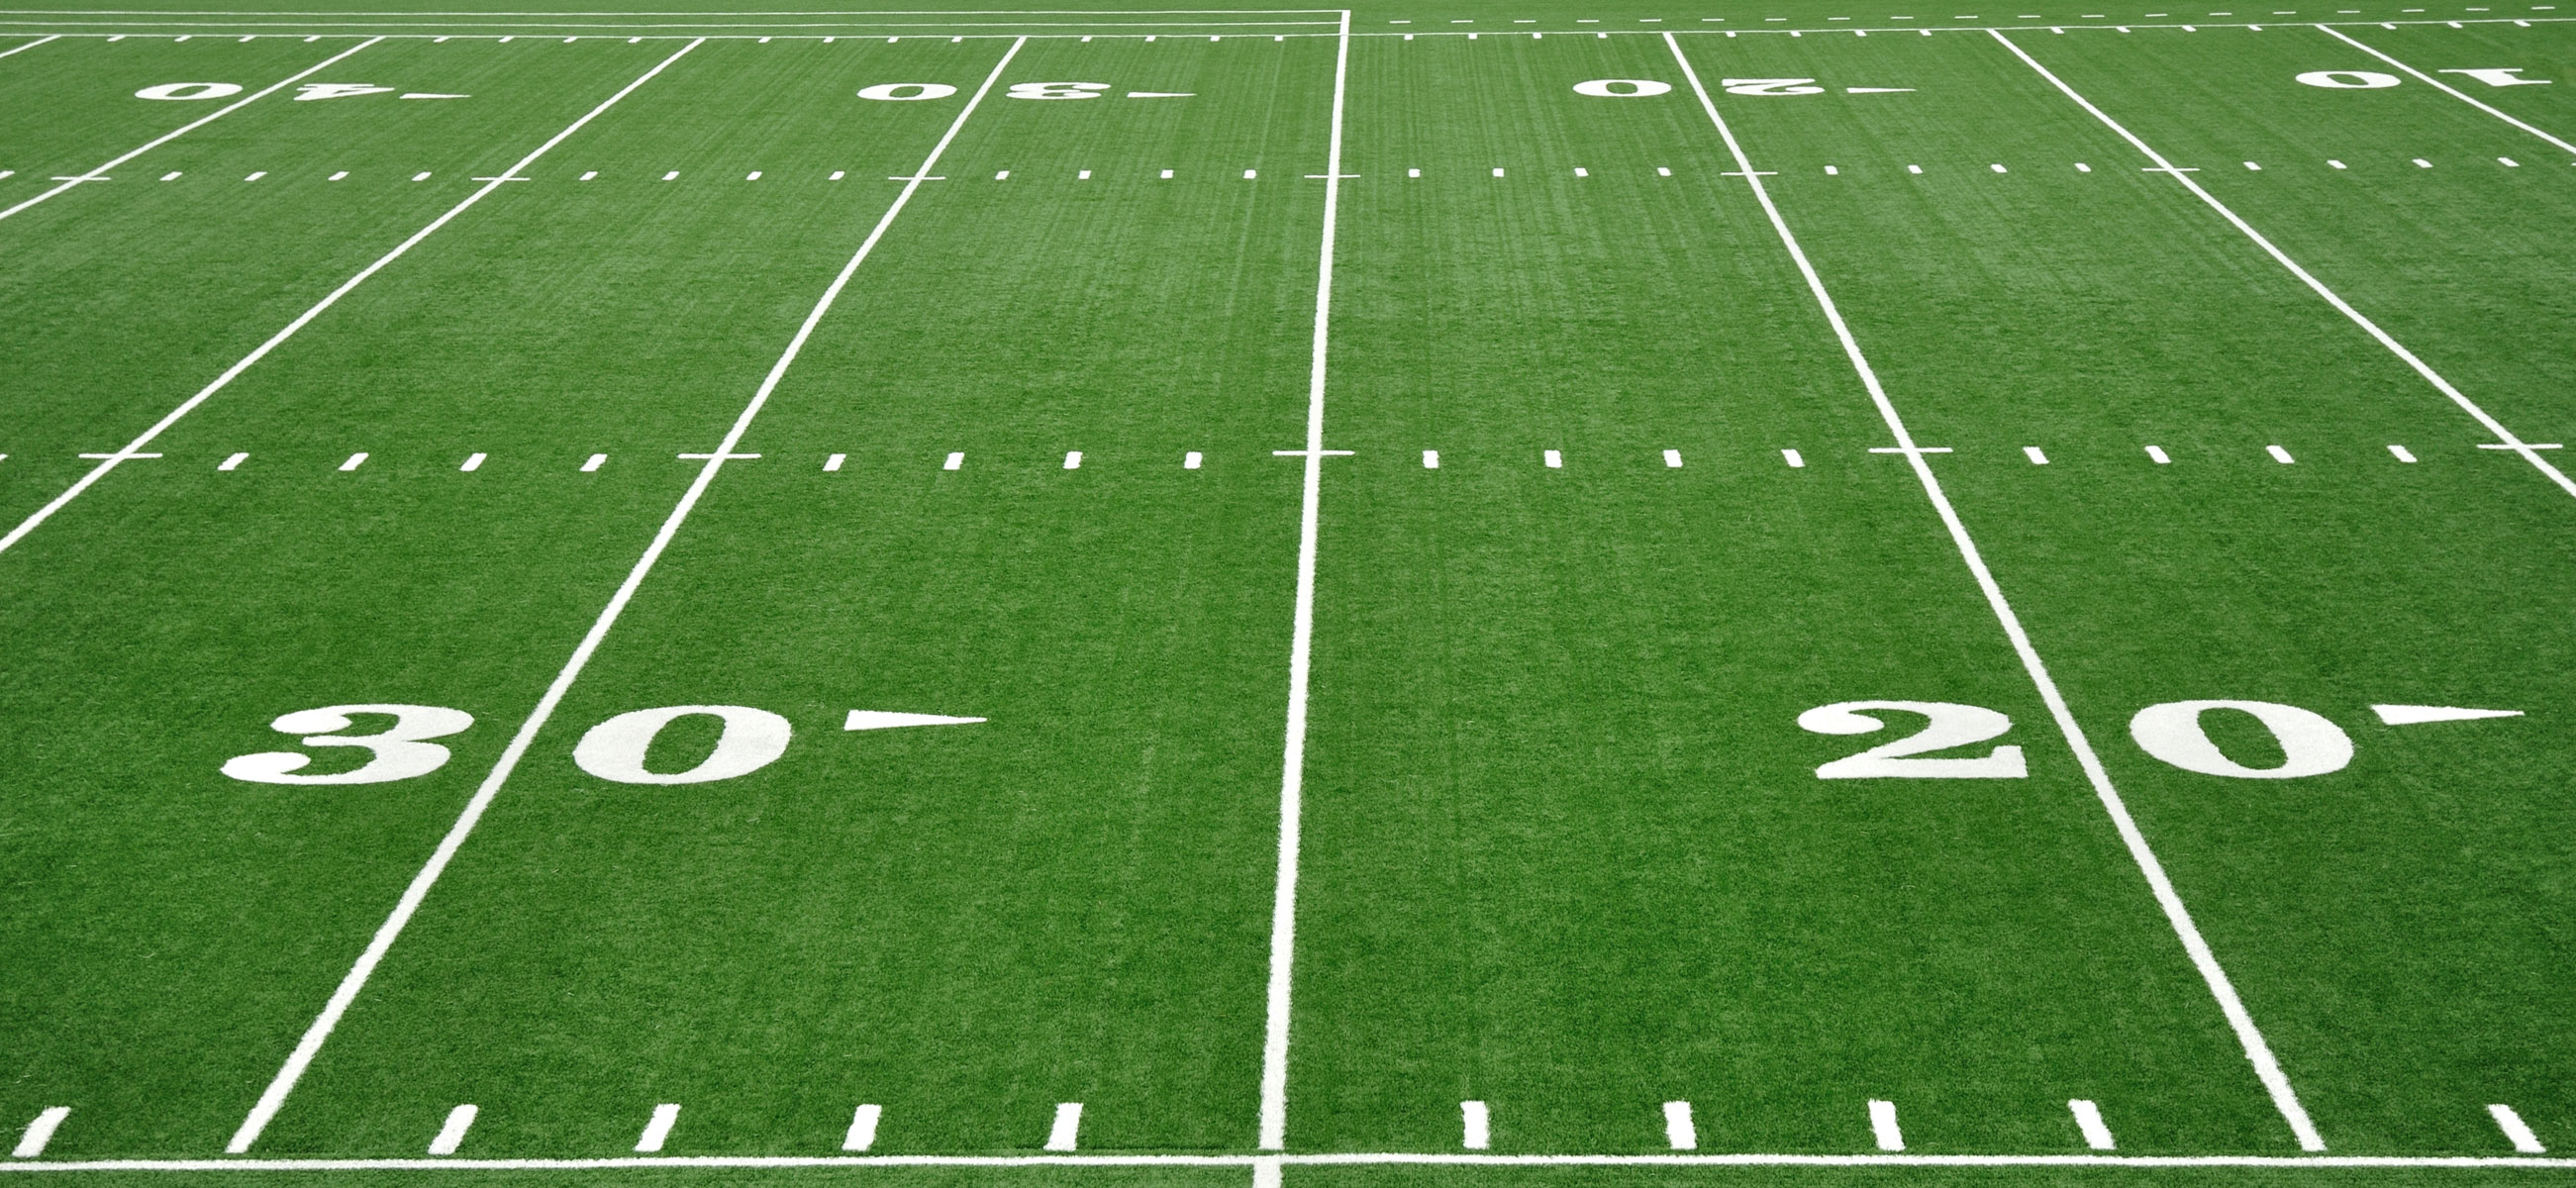 Best Photos of Football Field Background  Football Field Lines, UEFA